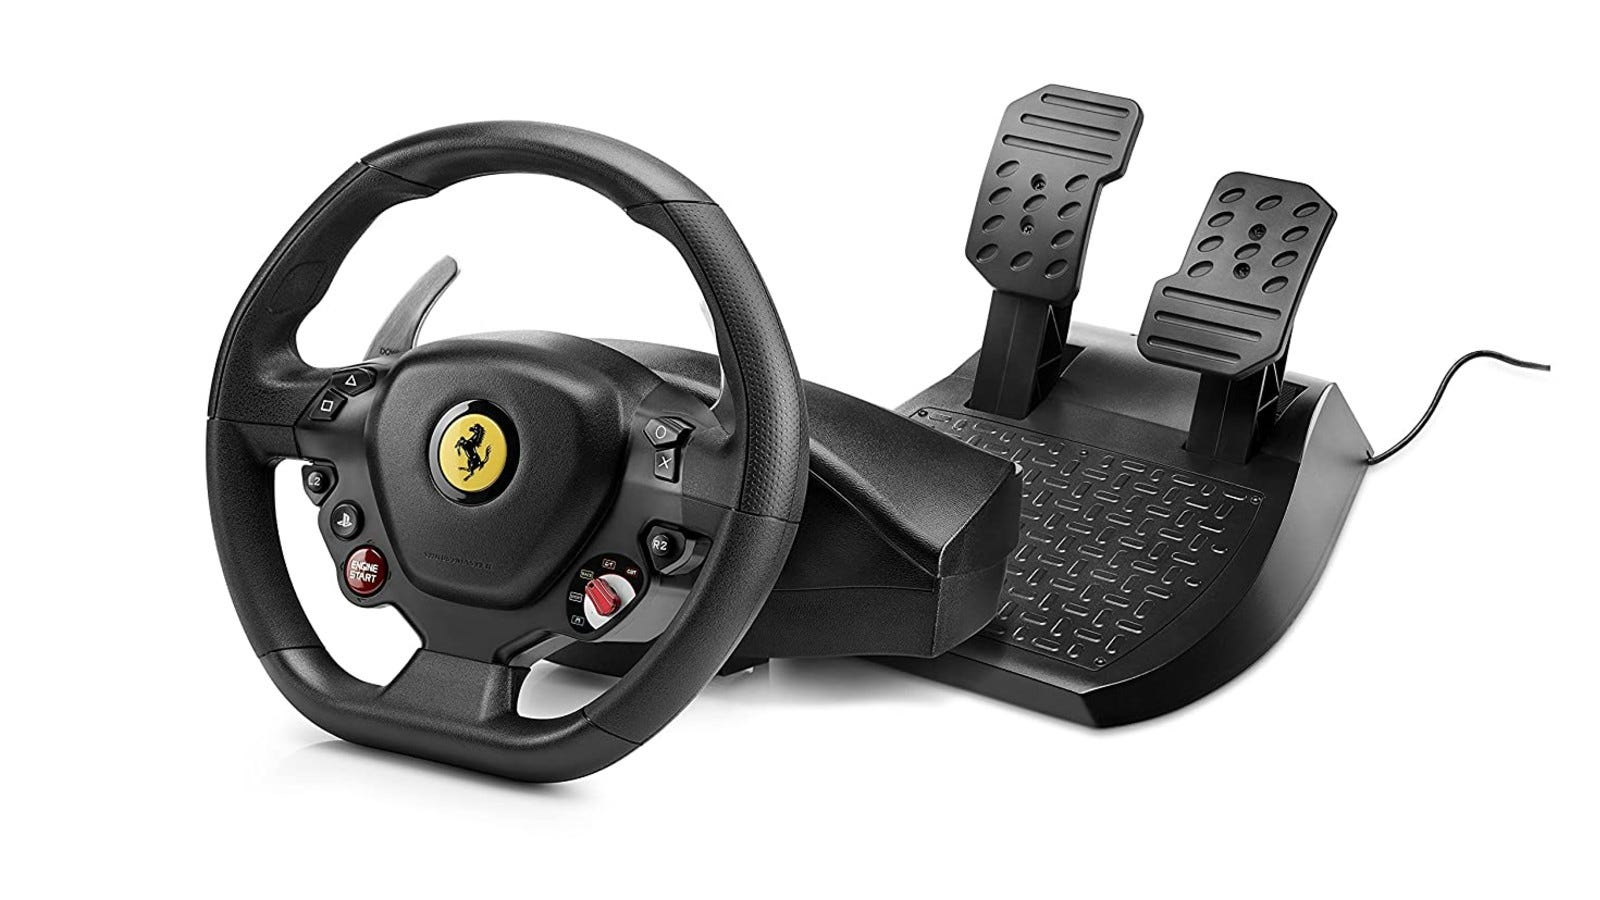 A full-size racing wheel that is compatible with PlayStation consoles